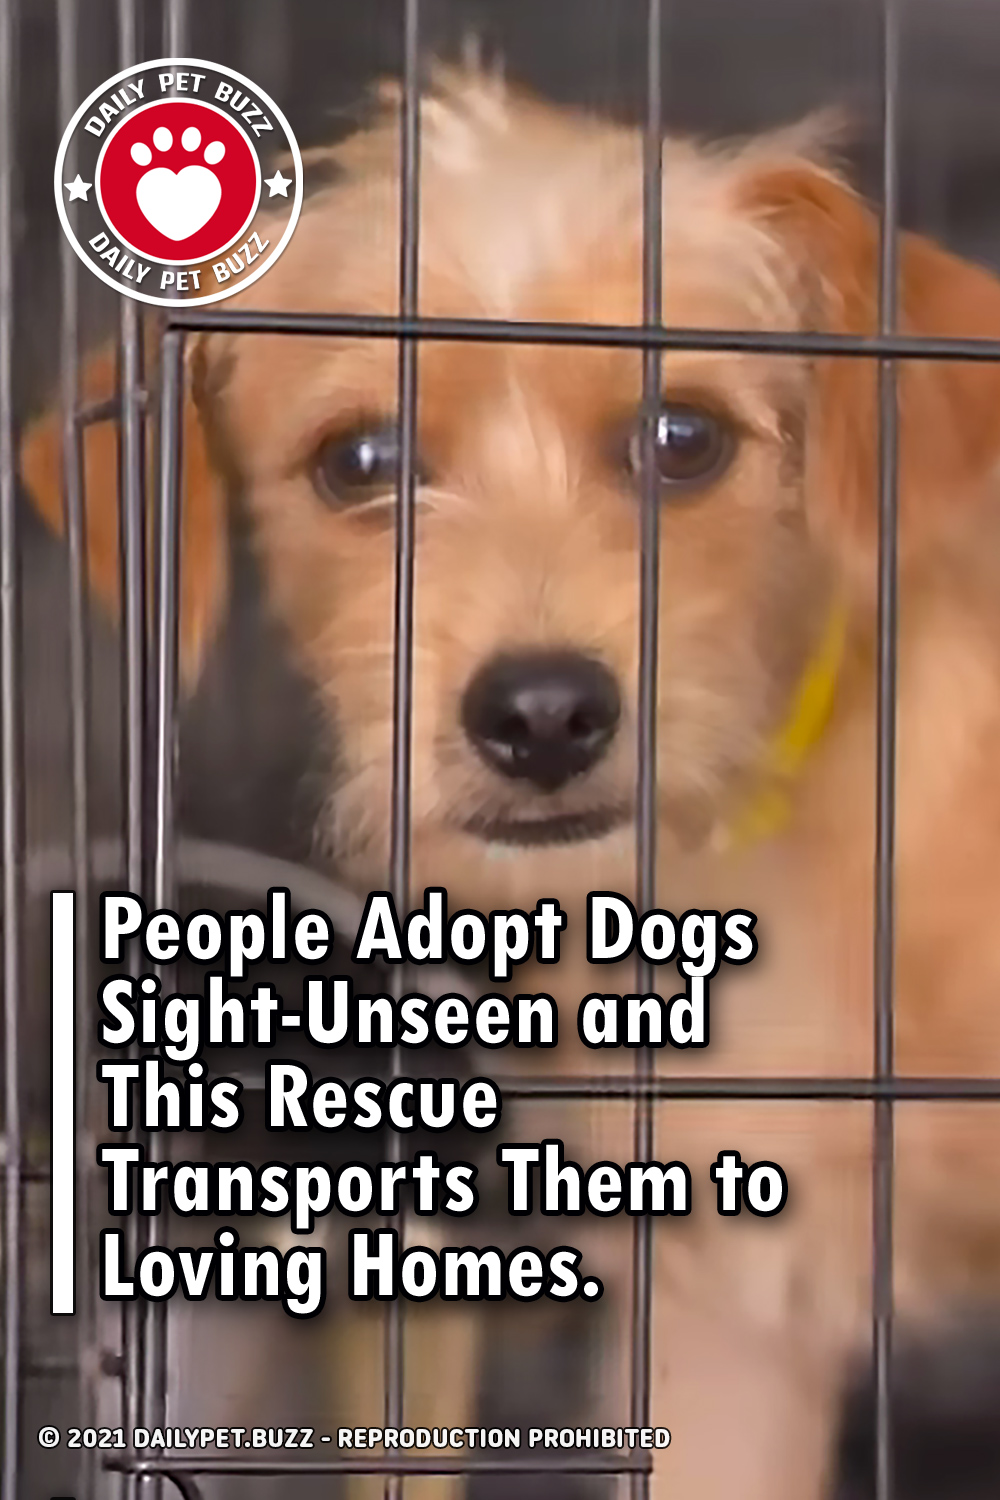 People Adopt Dogs Sight-Unseen and This Rescue Transports Them to Loving Homes.